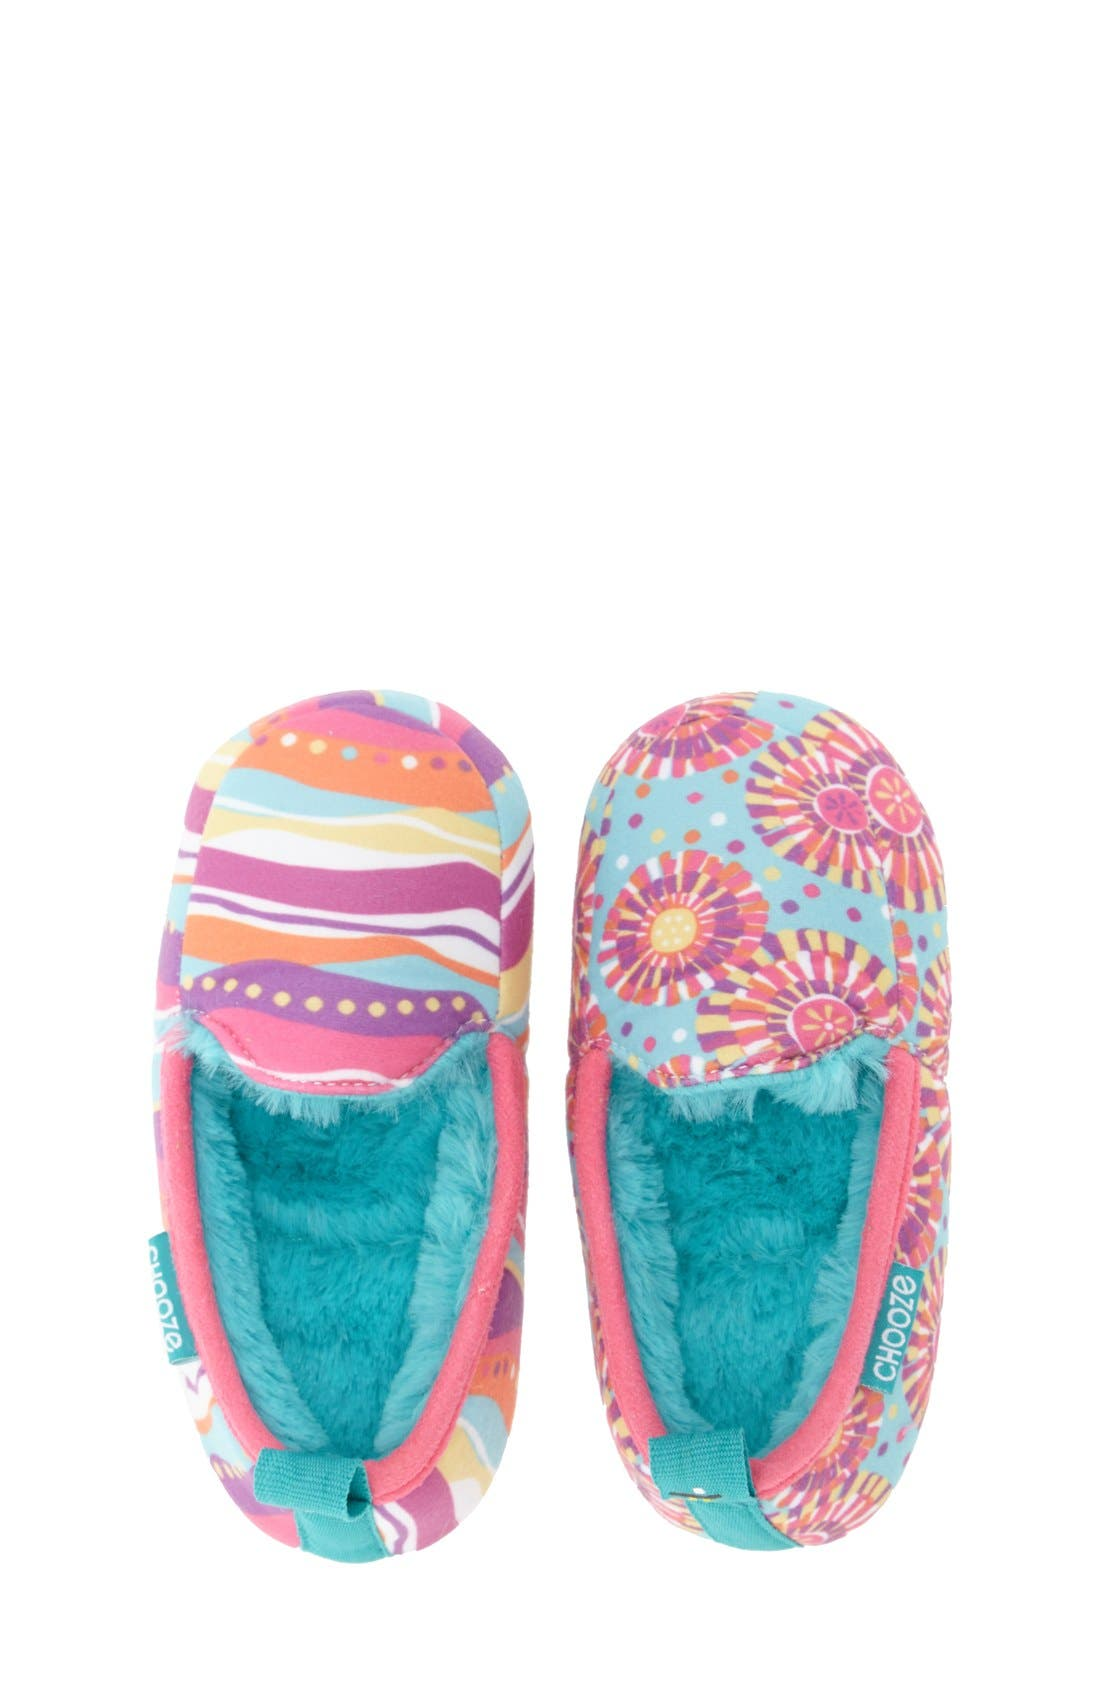 'Slumber' Slippers,                             Alternate thumbnail 67, color,